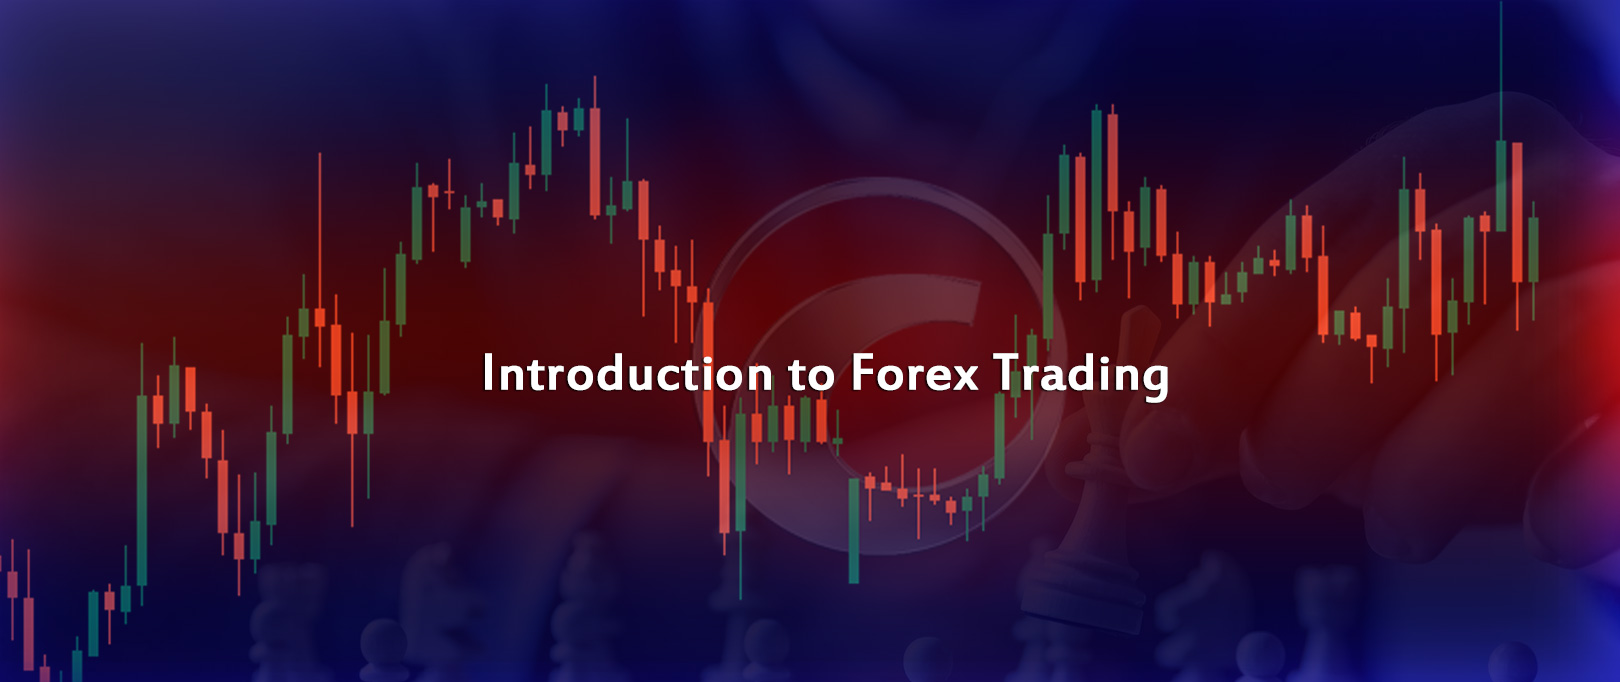 Introduction-to-Forex-Trading-in-Sri-Lanka-by-Prathilaba